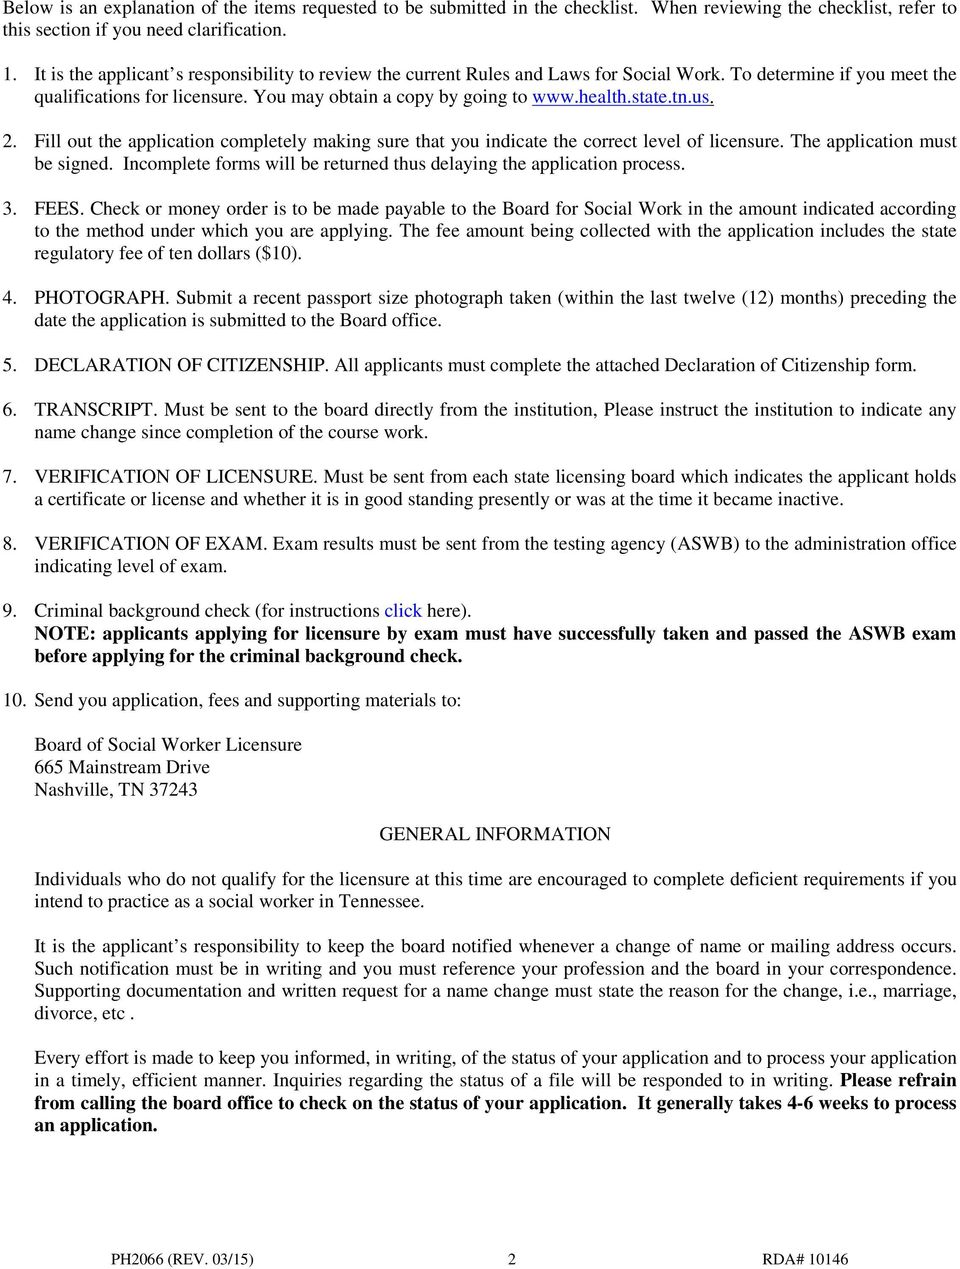 state.tn.us. 2. Fill out the application completely making sure that you indicate the correct level of licensure. The application must be signed.